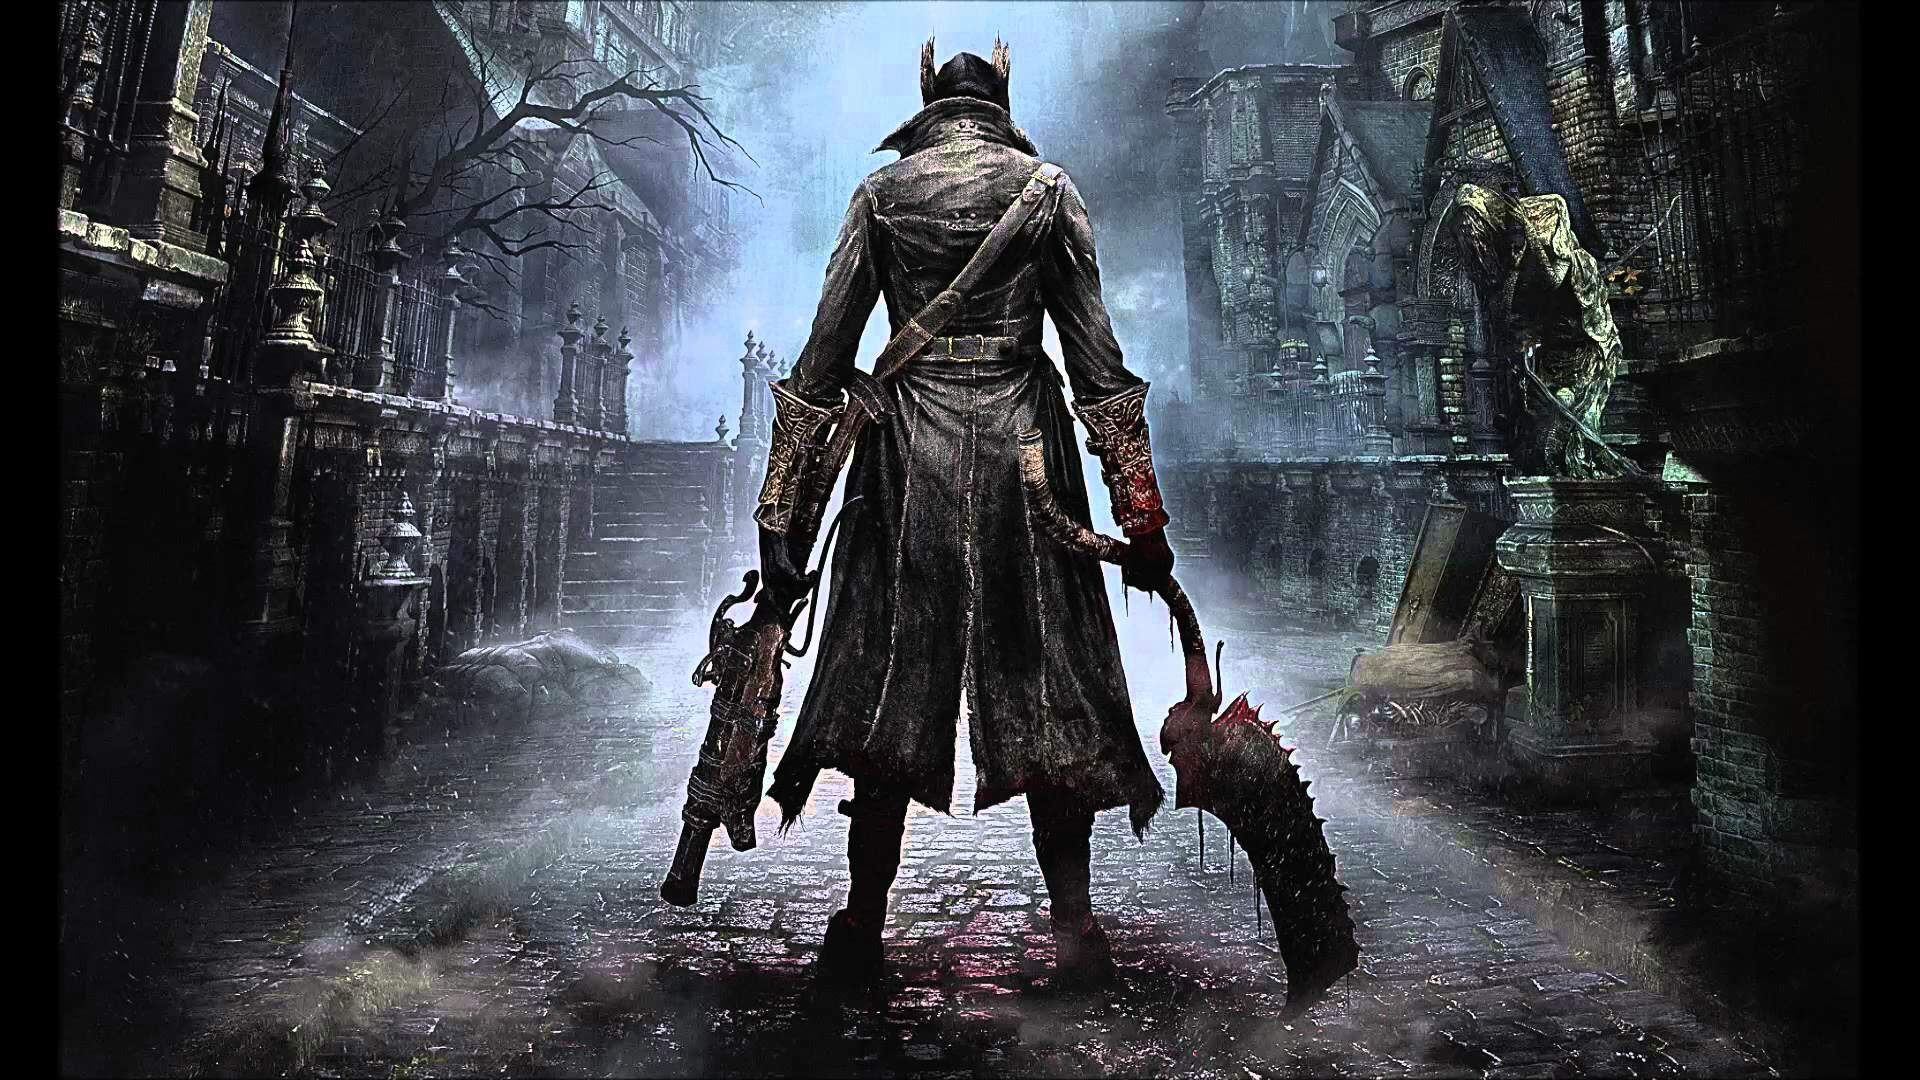 Souls Director Hidetaka Miyazaki Says Bloodborne Is His Favorite Game He's Worked On